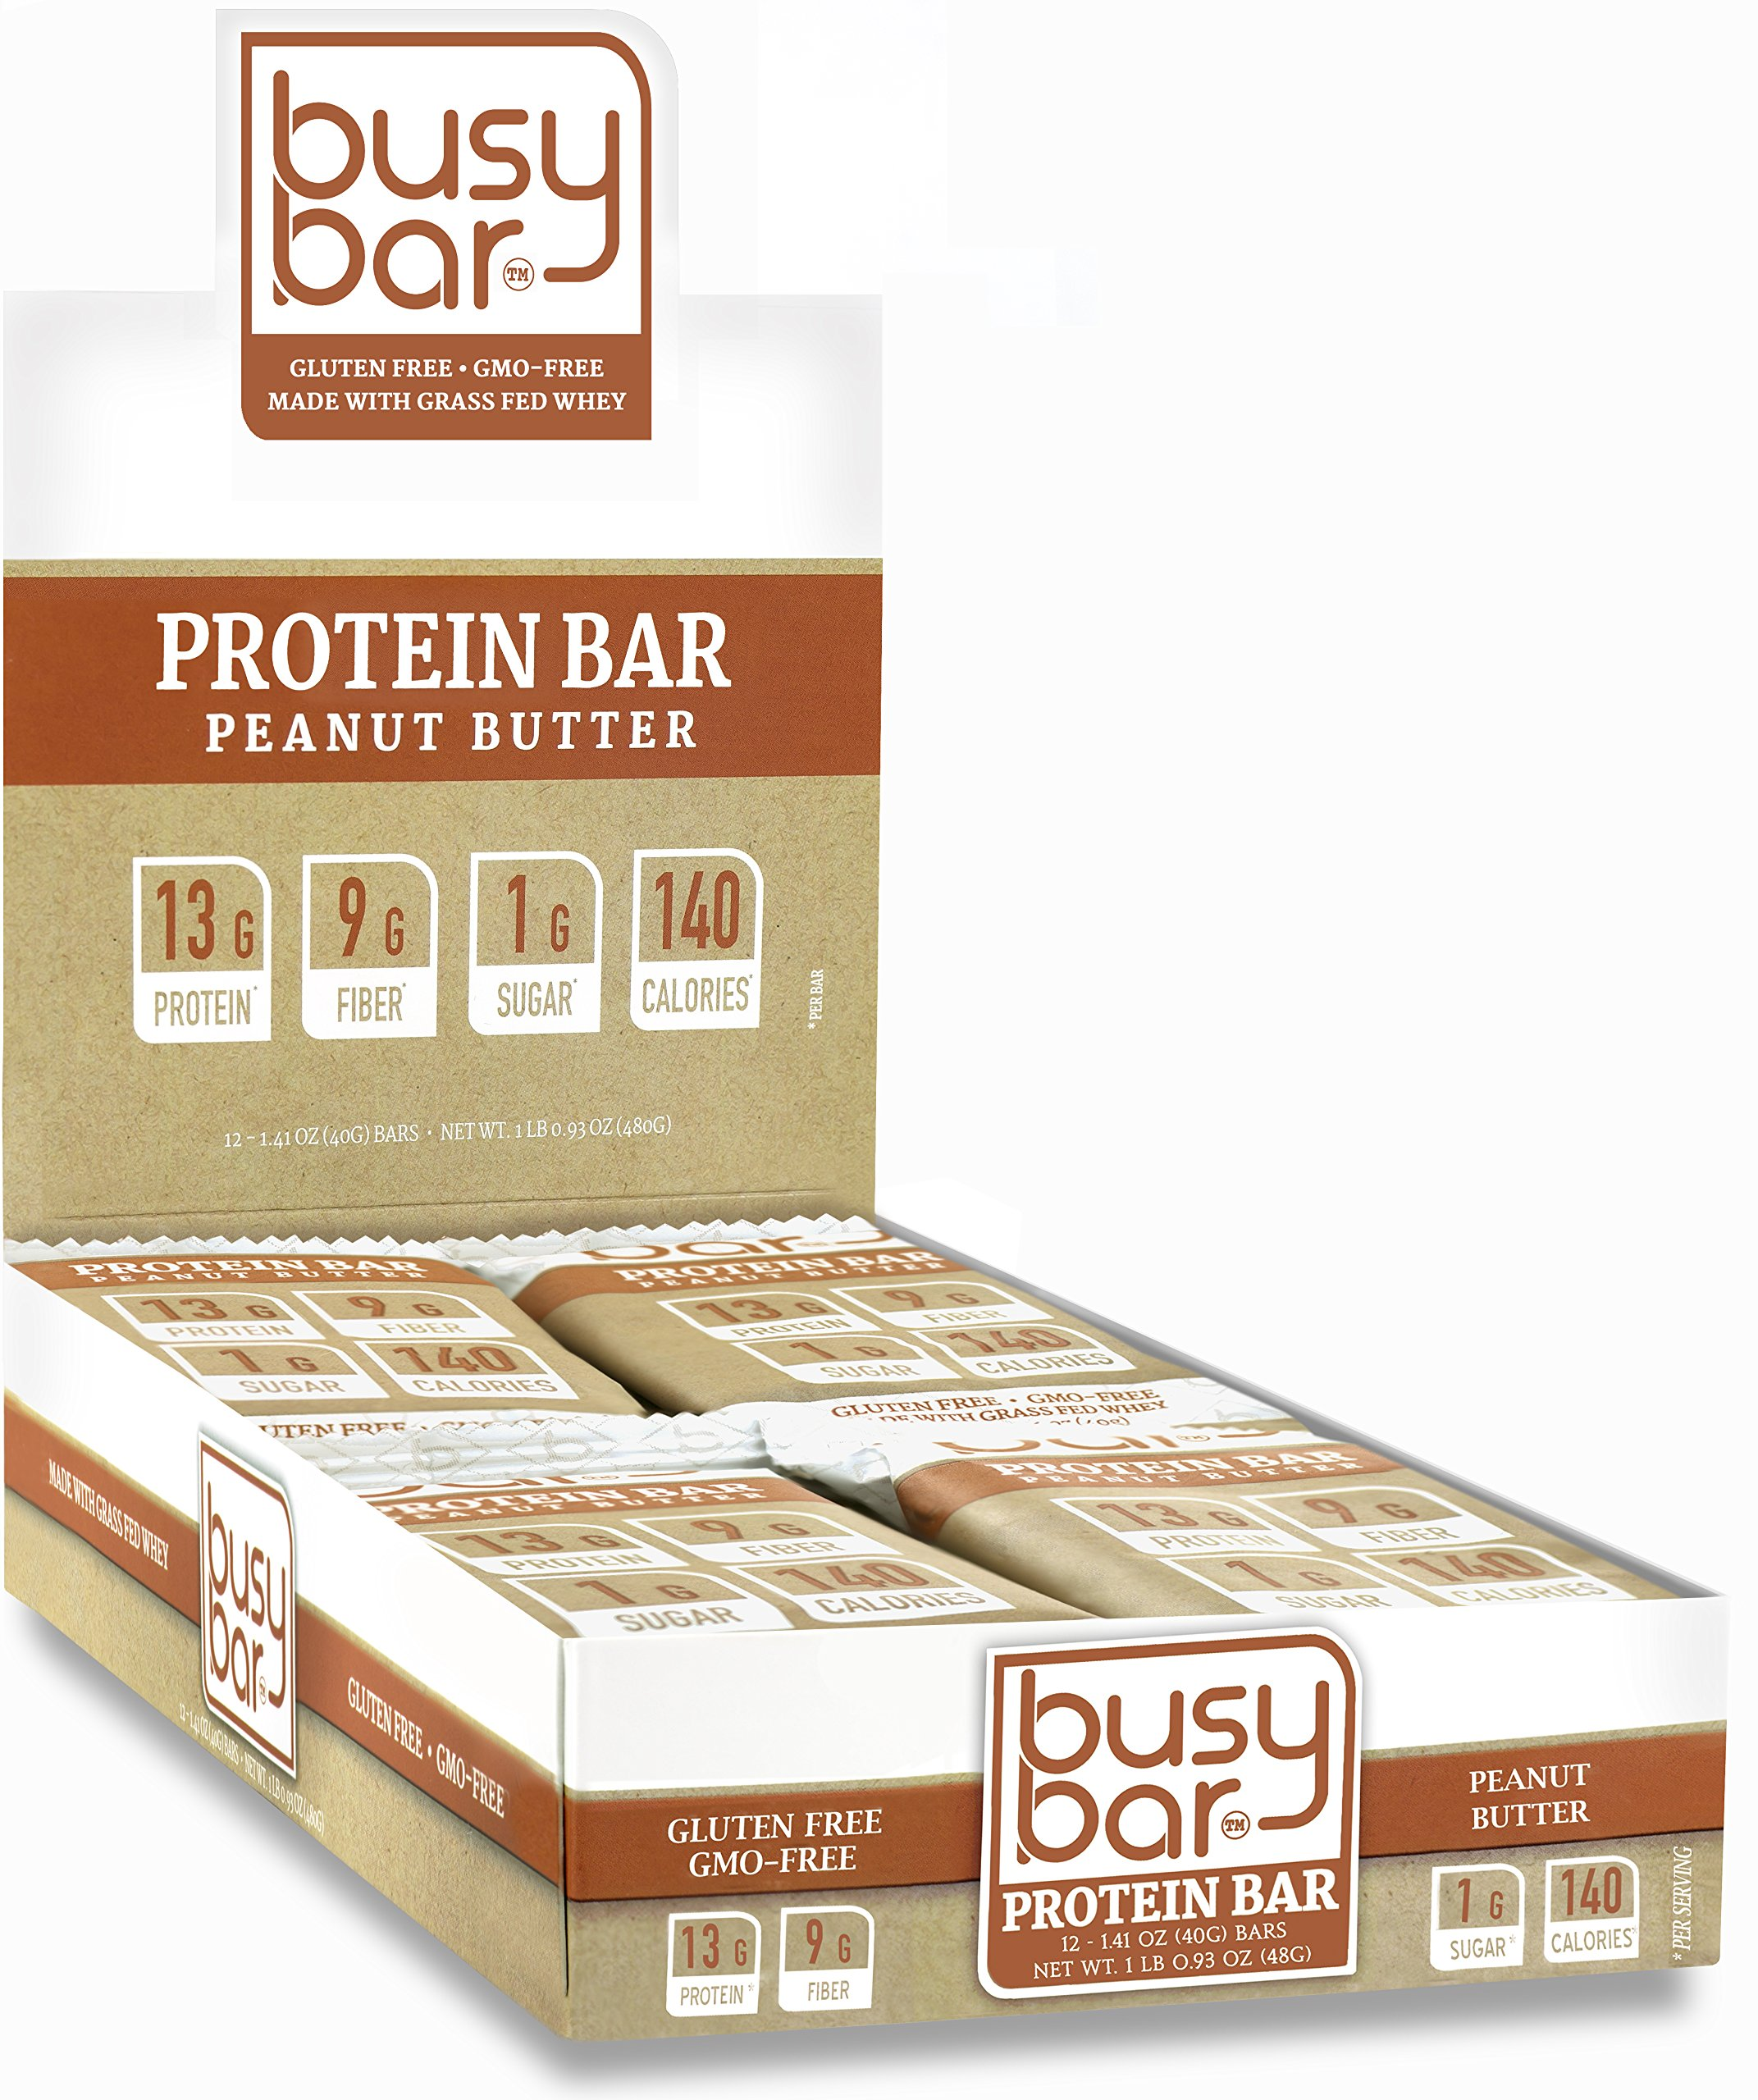 Busy Bar, Grass Fed Whey Protein Bars, Peanut Butter, 1g of Sugar, 13g of Protein, Only 140 Calories, Gluten Free, Low Carb Bar, Soy Free, GMO-Free, Perfect Snack On-The-Go (12 Bars) by Too Busy To Eat